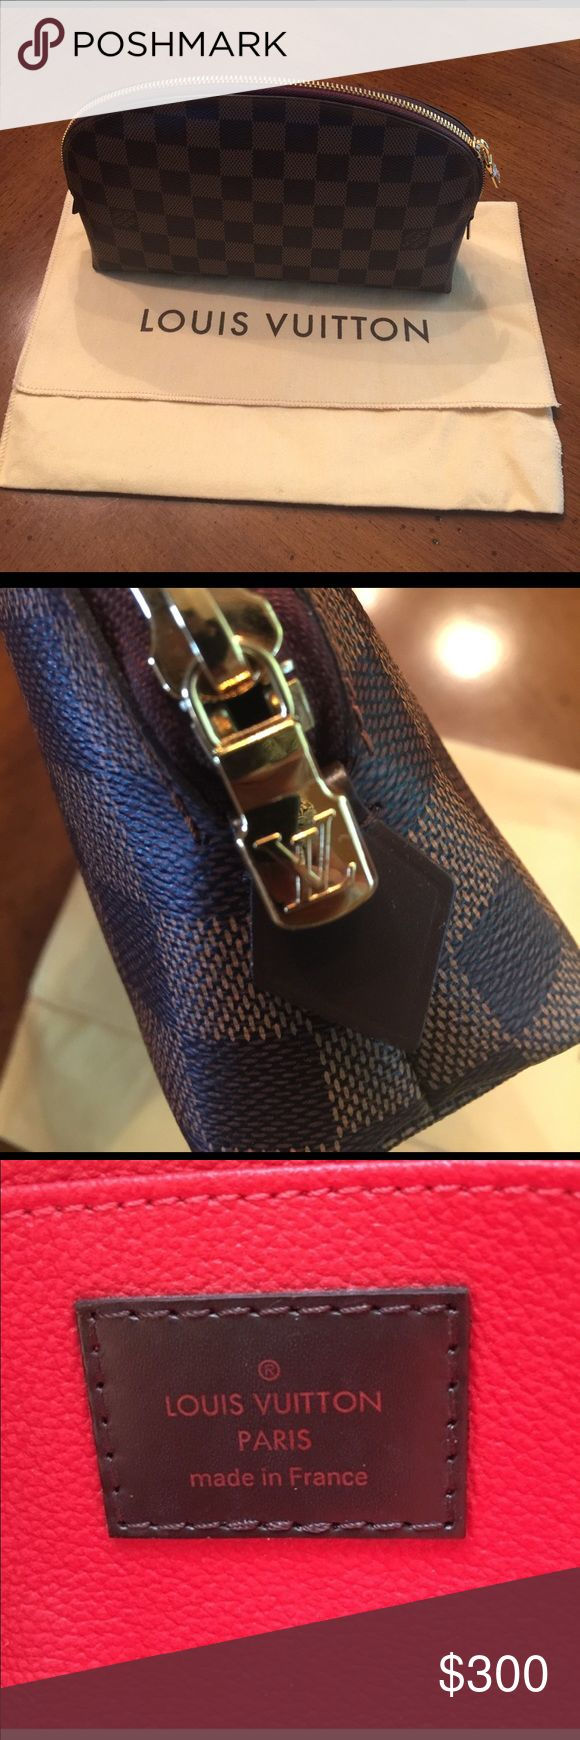 Louis Vuitton Cosmetic Case GM Louis Vuitton cosmetic case Demier Ebene w/ dust cover.  Date code is difficult to see.  It is right a seam in inside pocket.  Please see attached pic. Code looks like SR 0144. If you have any questions please Thanks Louis Vuitton Bags Cosmetic Bags & Cases